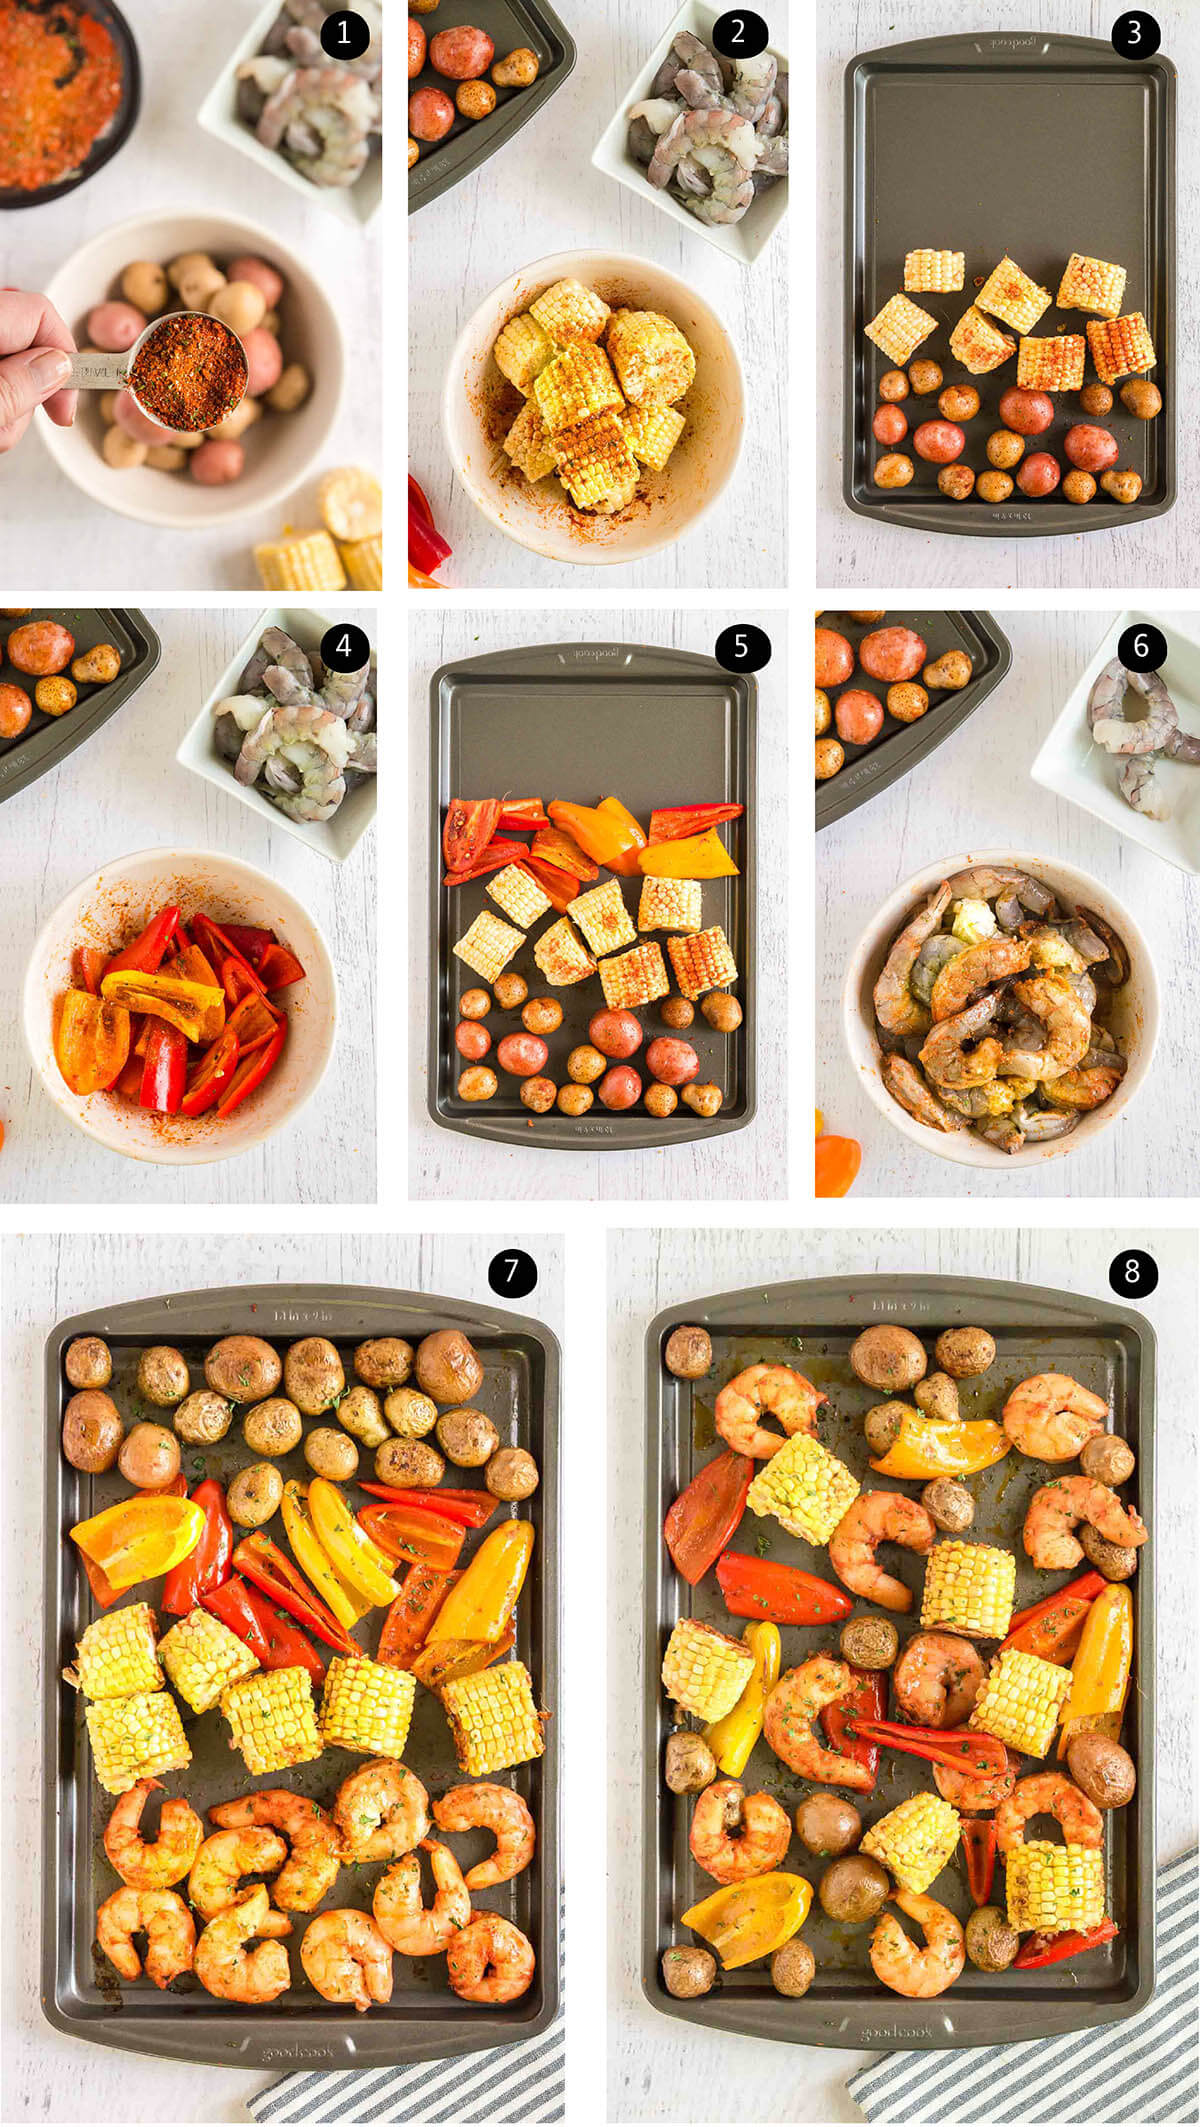 Photos with step by step instructions to make sheet pan shrimp dinner.